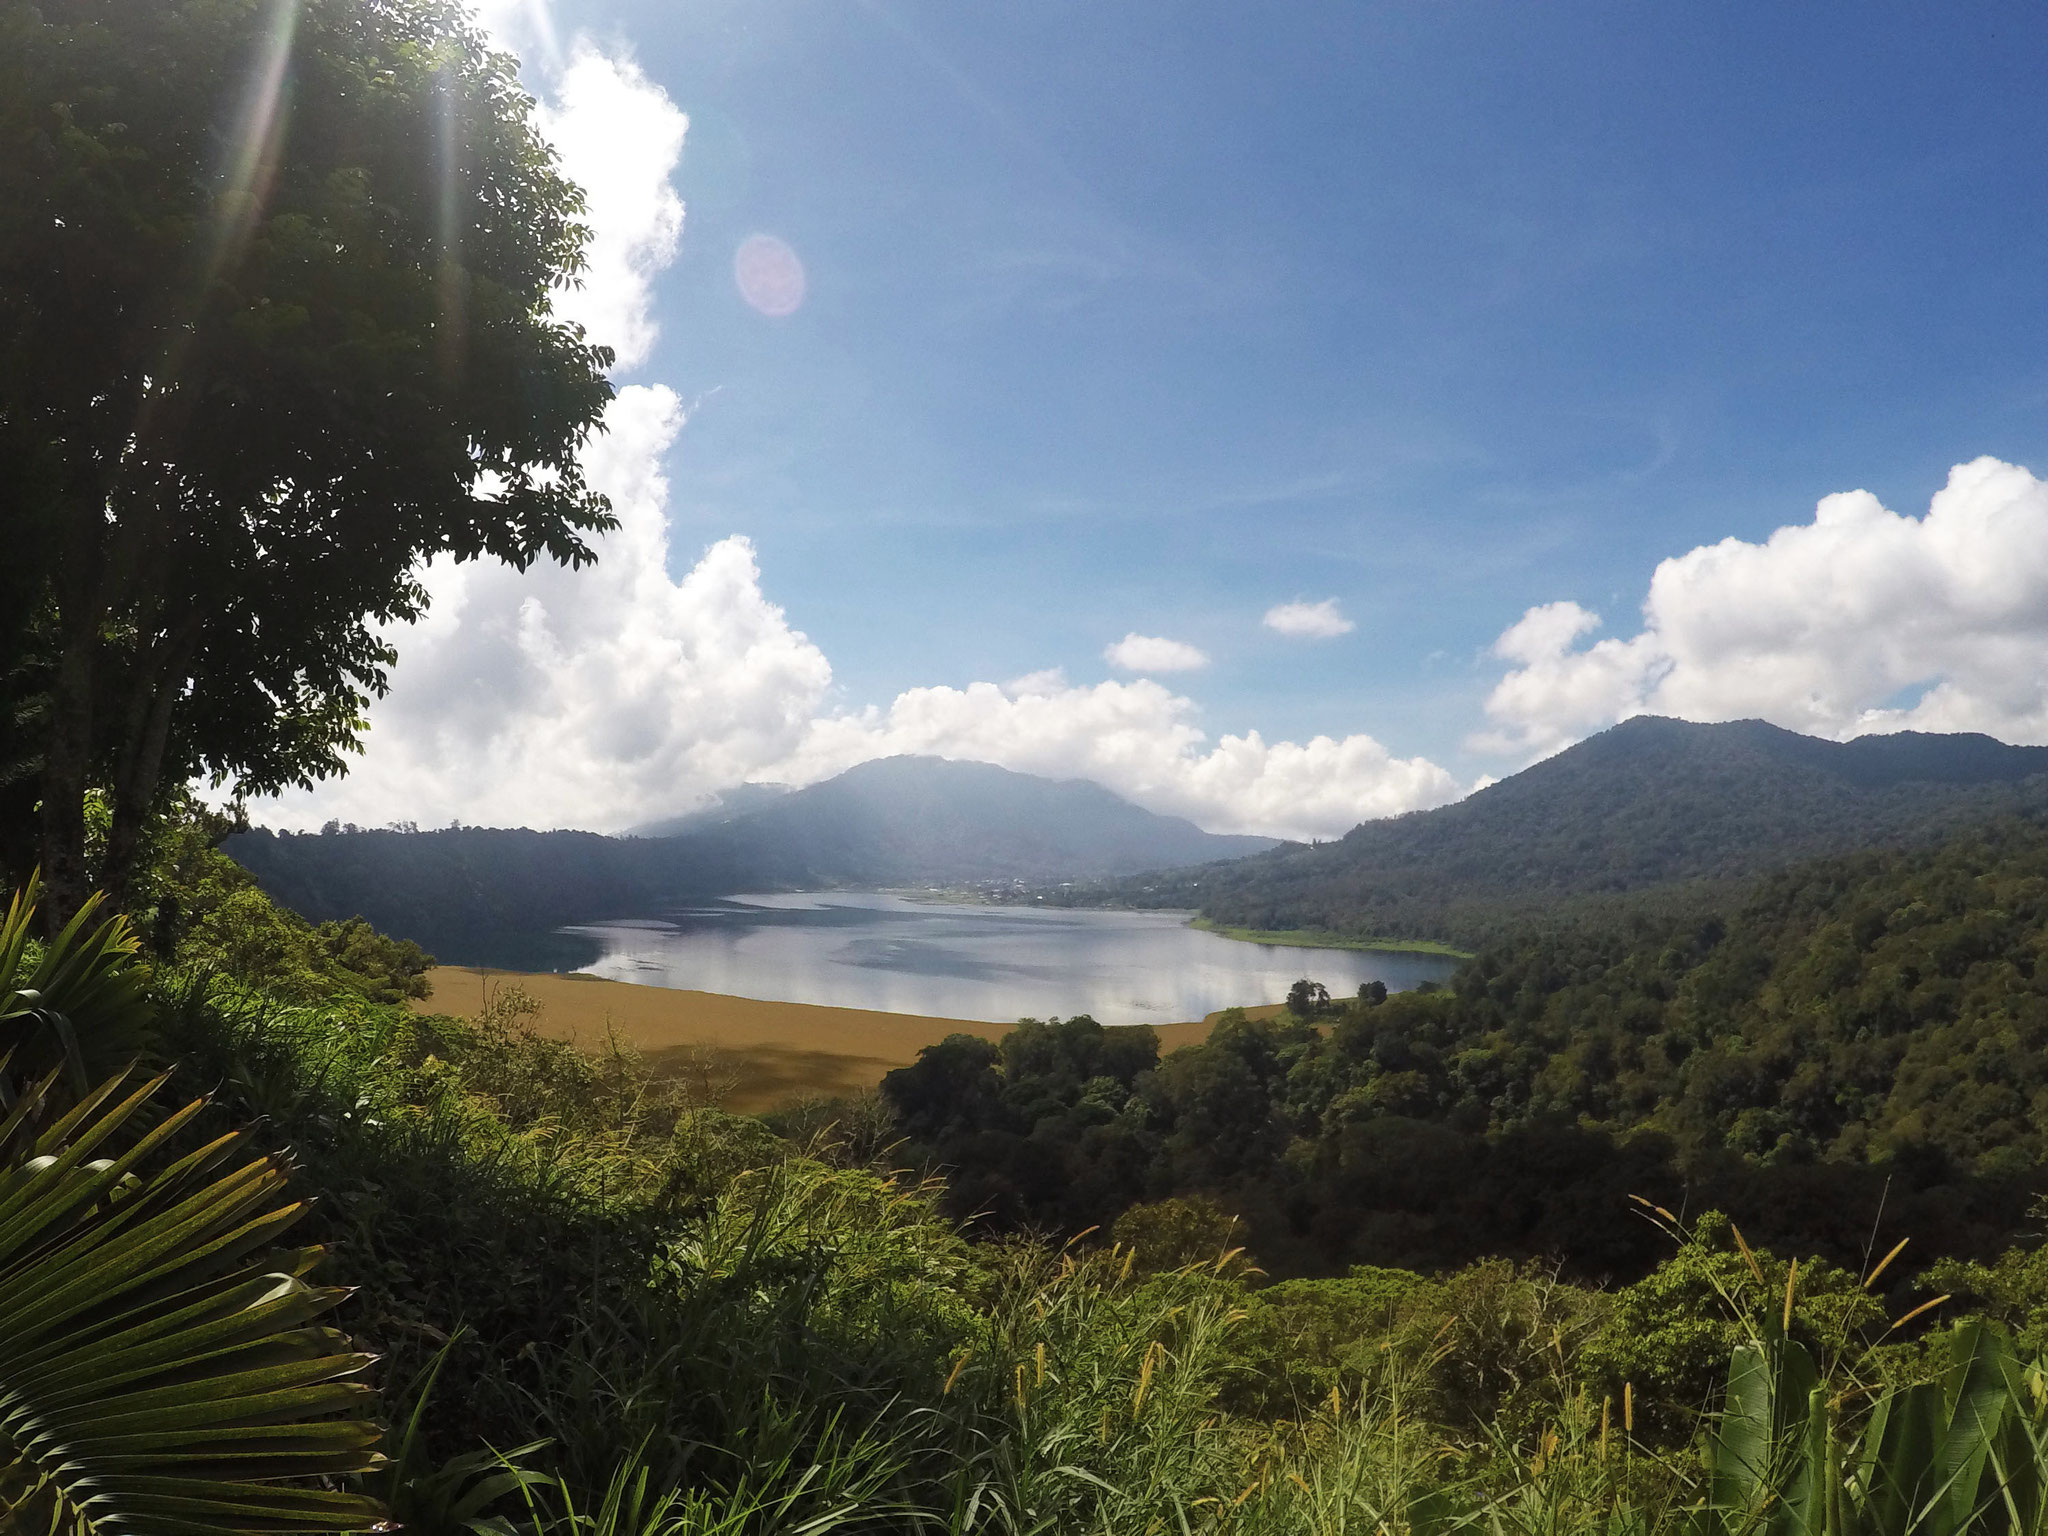 Danau Tour: Stunnings lakes.